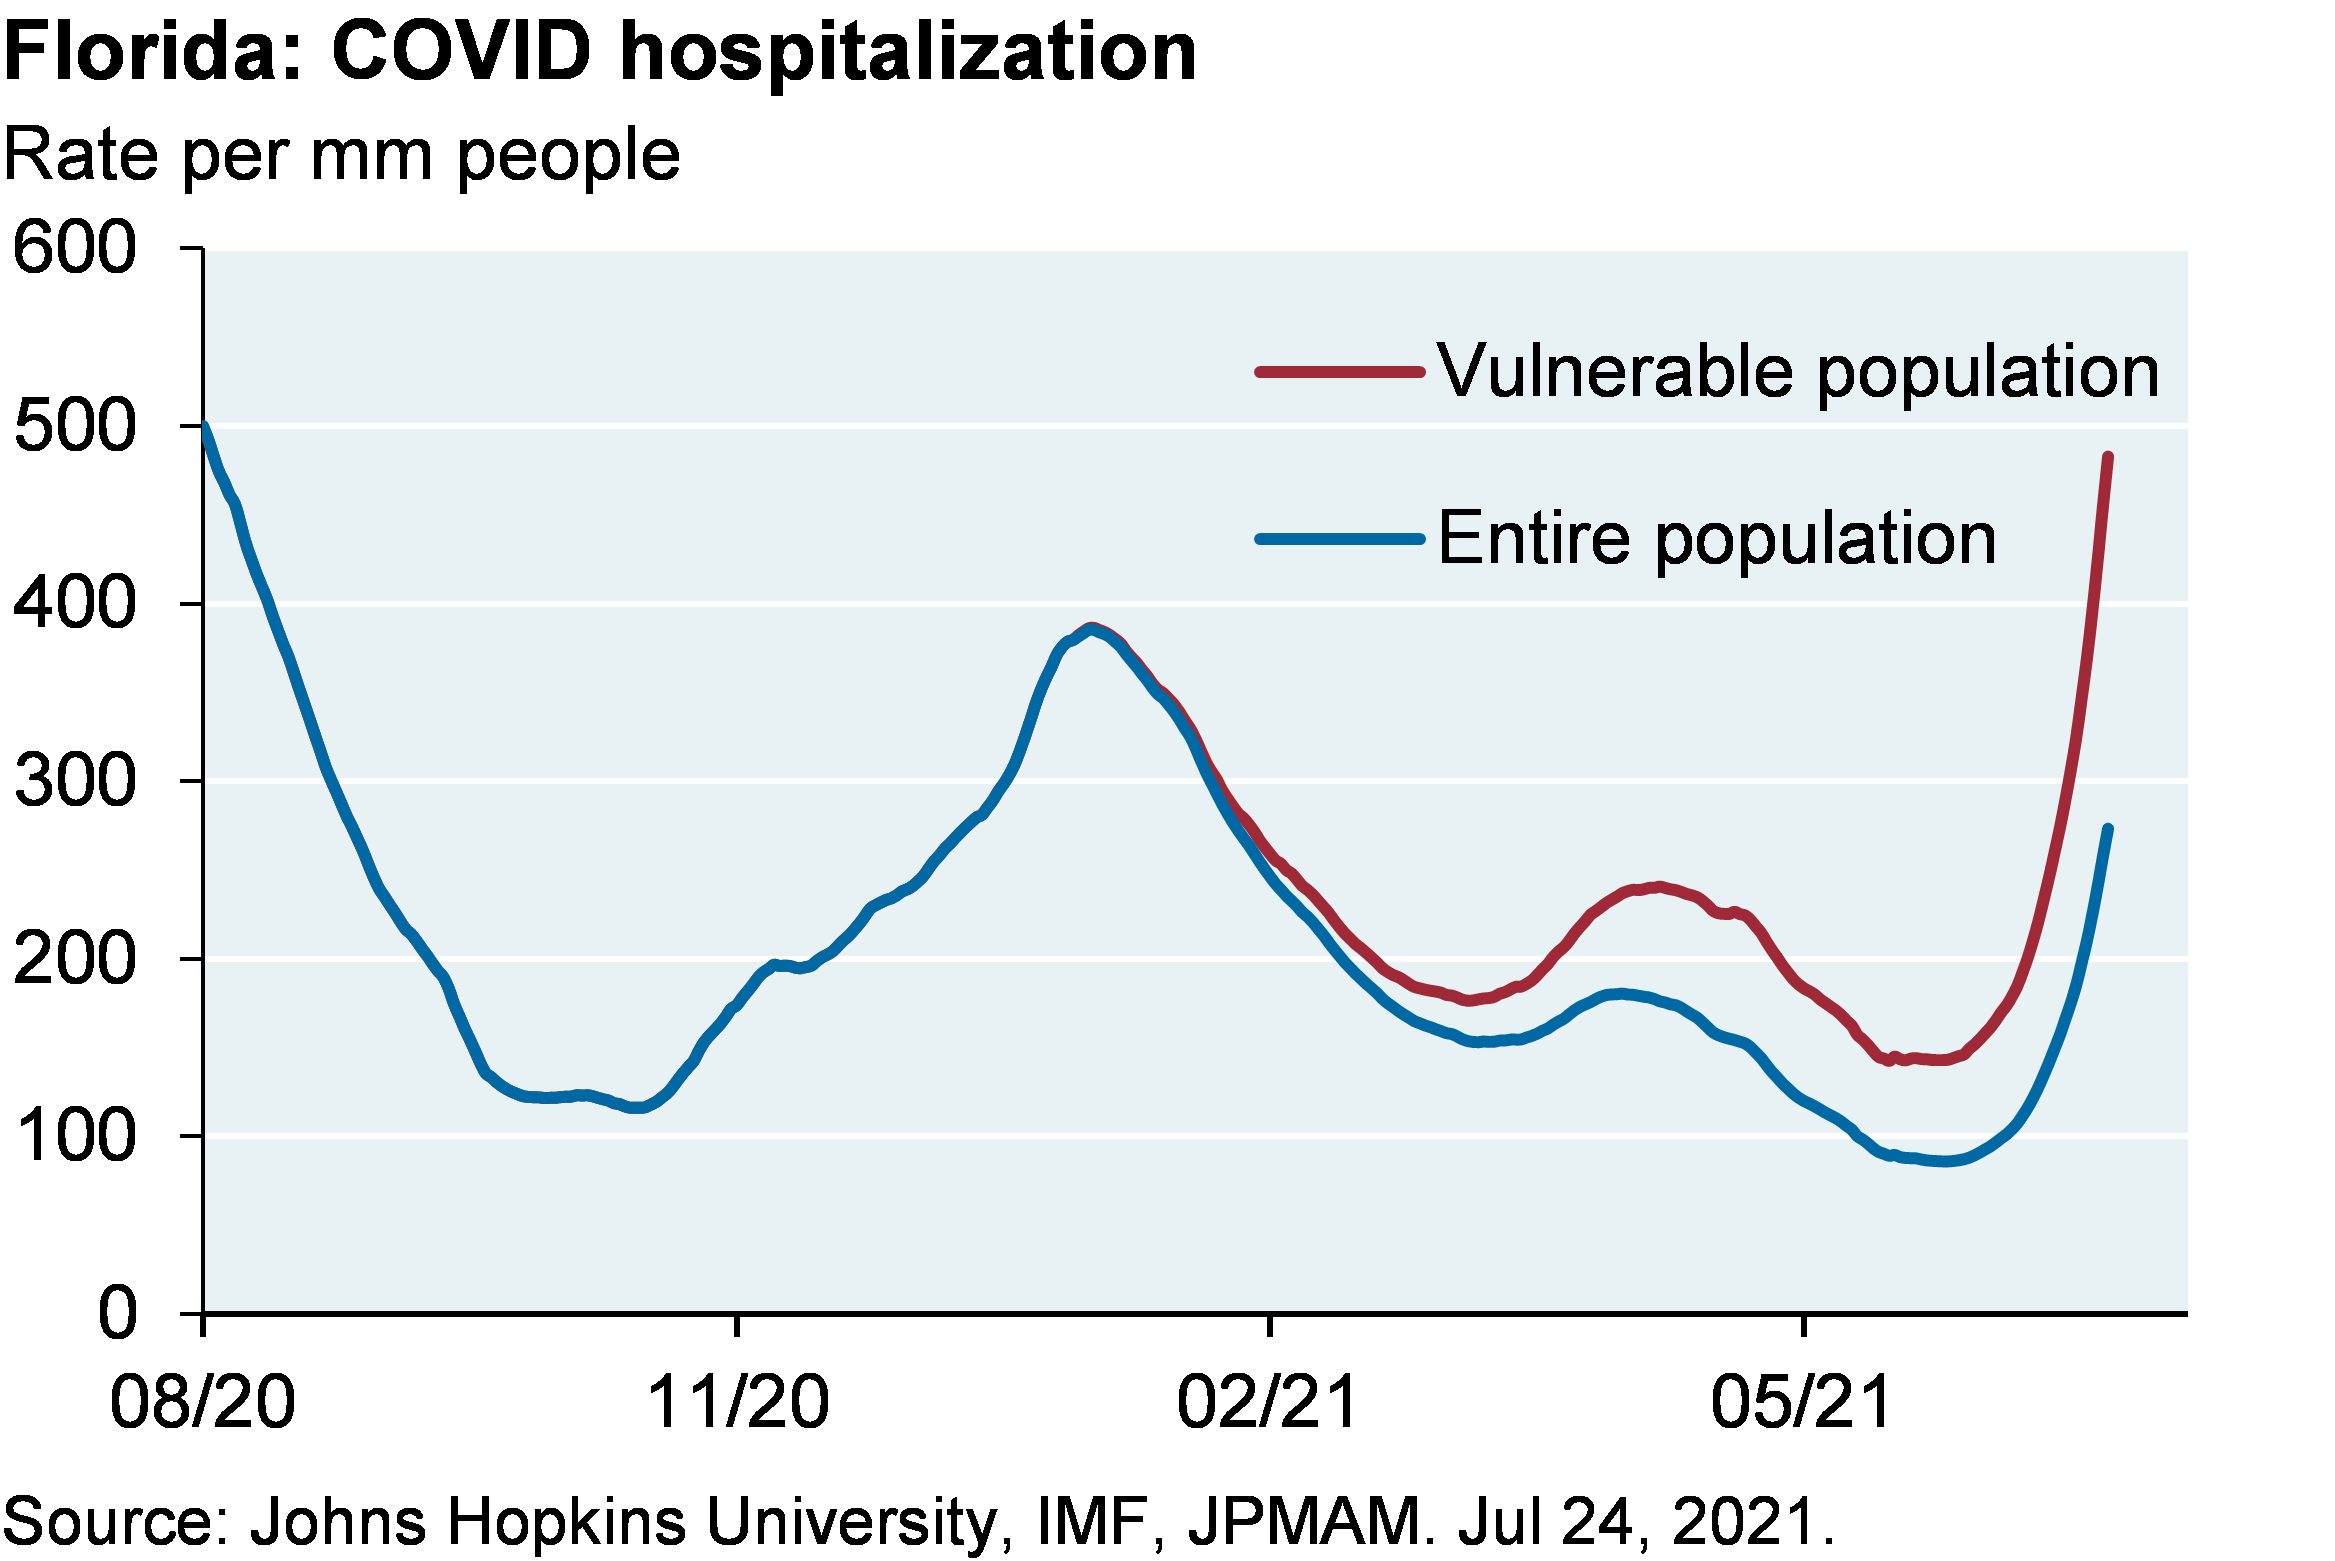 Line chart shows COVID hospitalization in Florida for the vulnerable population compared to the entire population, shown as the hospitalization rate per million people. Hospitalizations for the entire population are around 300 per million compared to almost 500 per million among the vulnerable population, which is higher than the January 2021 peak of around 400 per million.